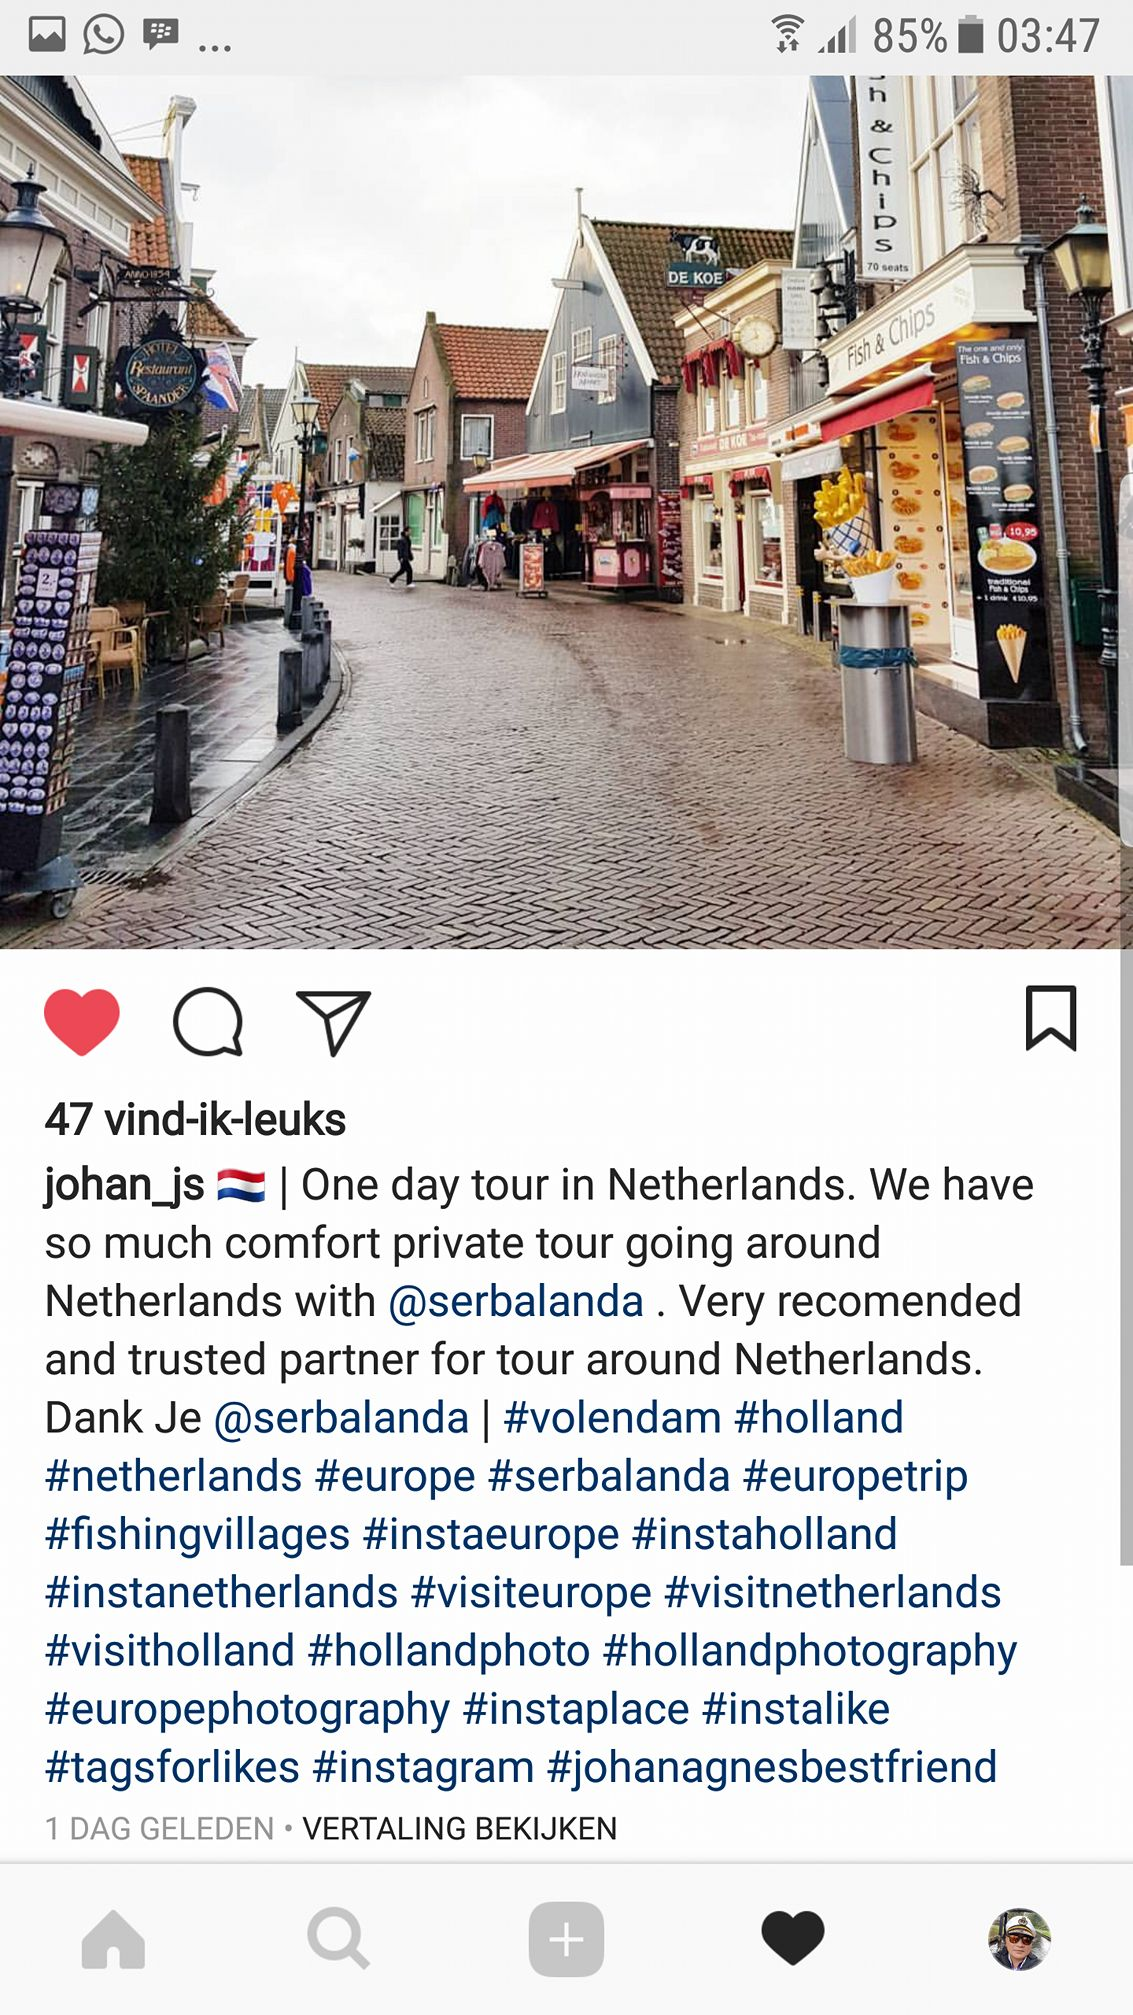 One day tour in Netherlands. We have so much comfort private tour going around in the Netherlands with Serbalanda. Very recommended and trusted partner for tour around Netherlands.